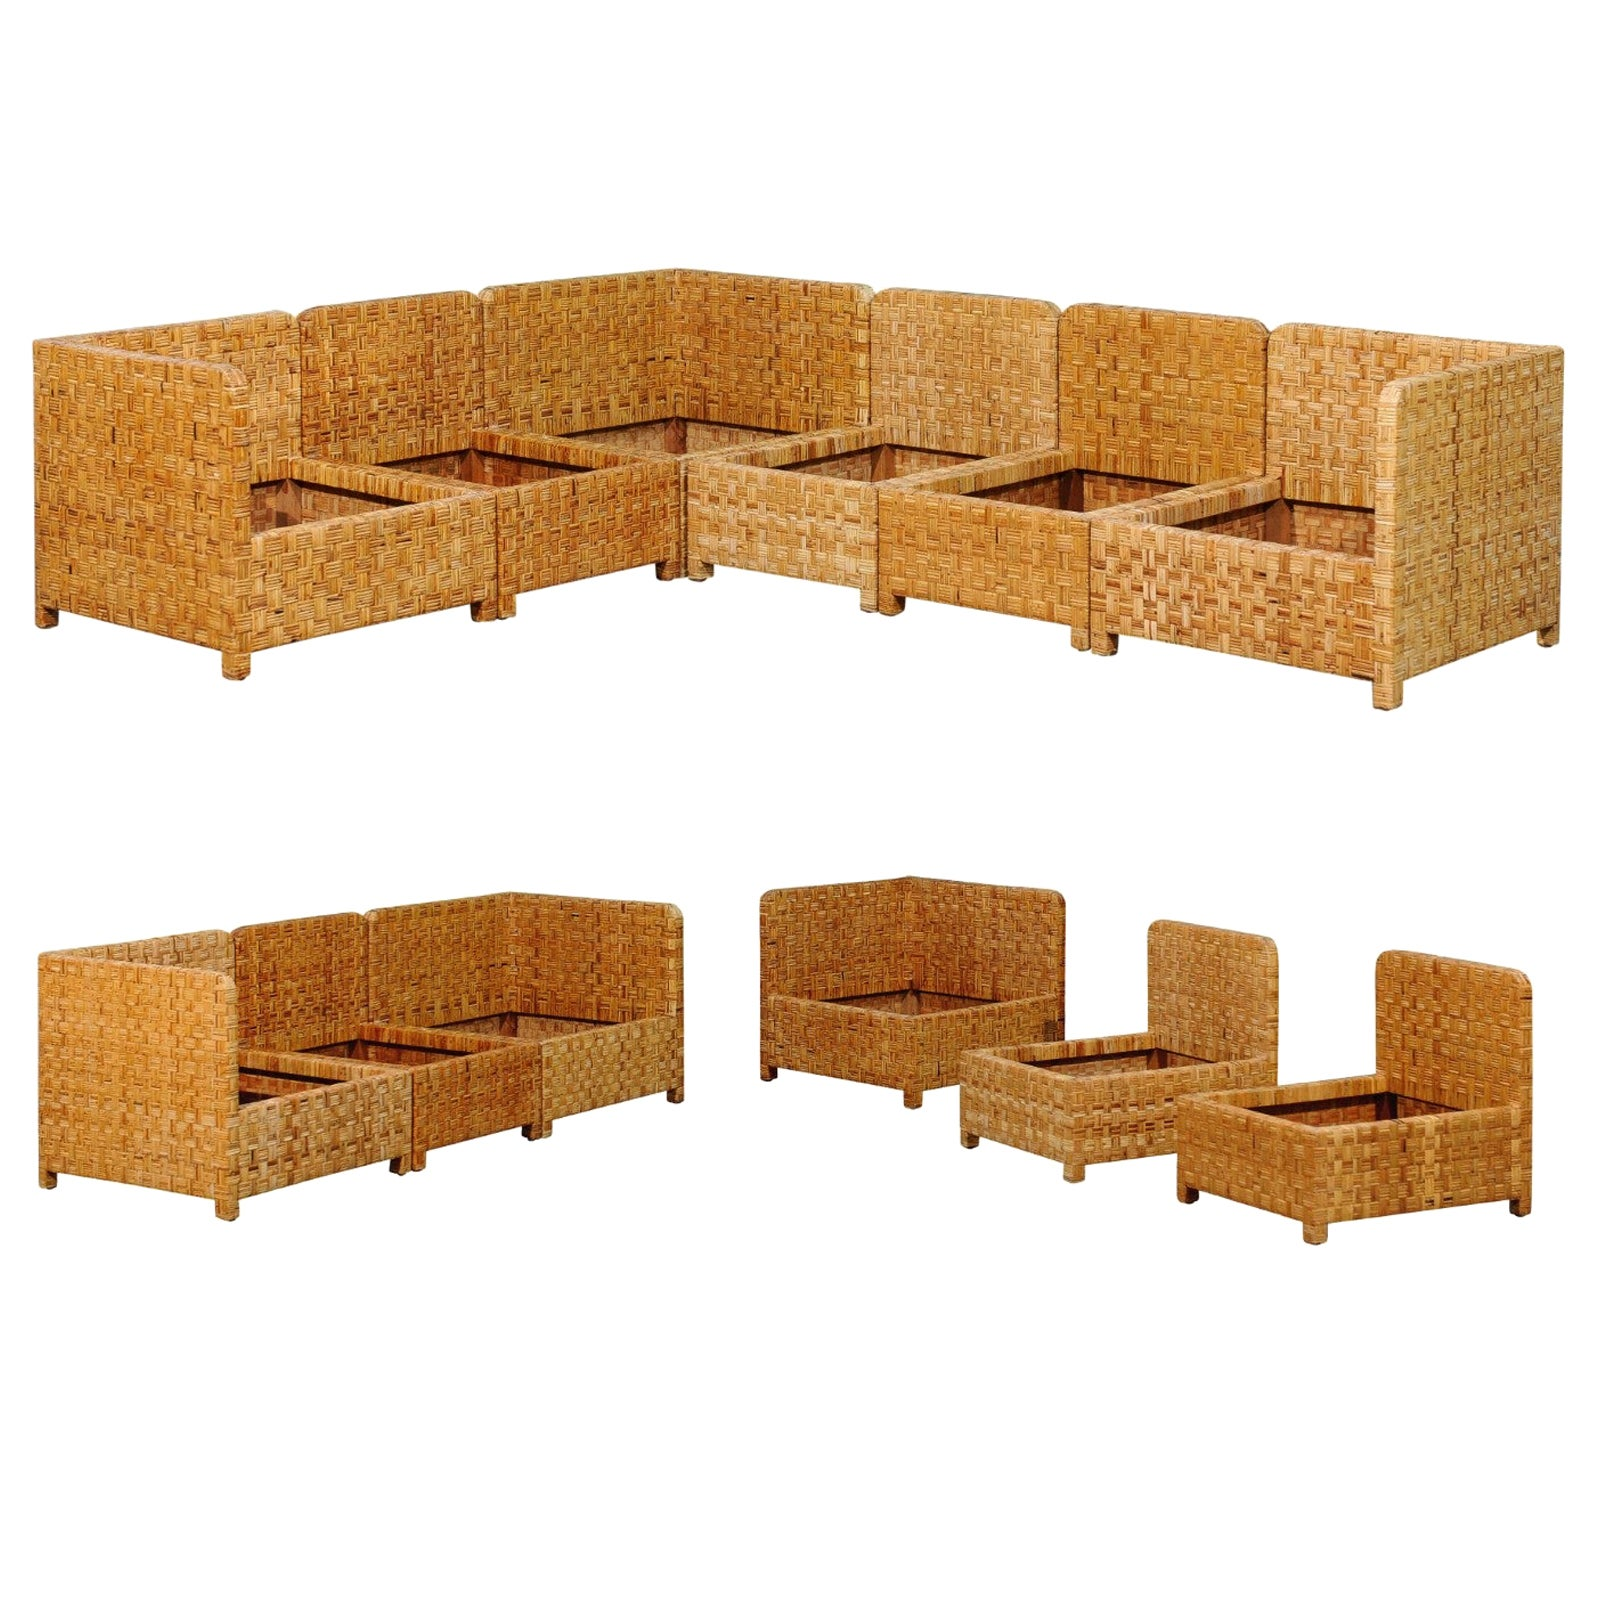 Stellar 6-Piece Basketweave Cane Seating Set by Danny Ho Fong, circa 1975